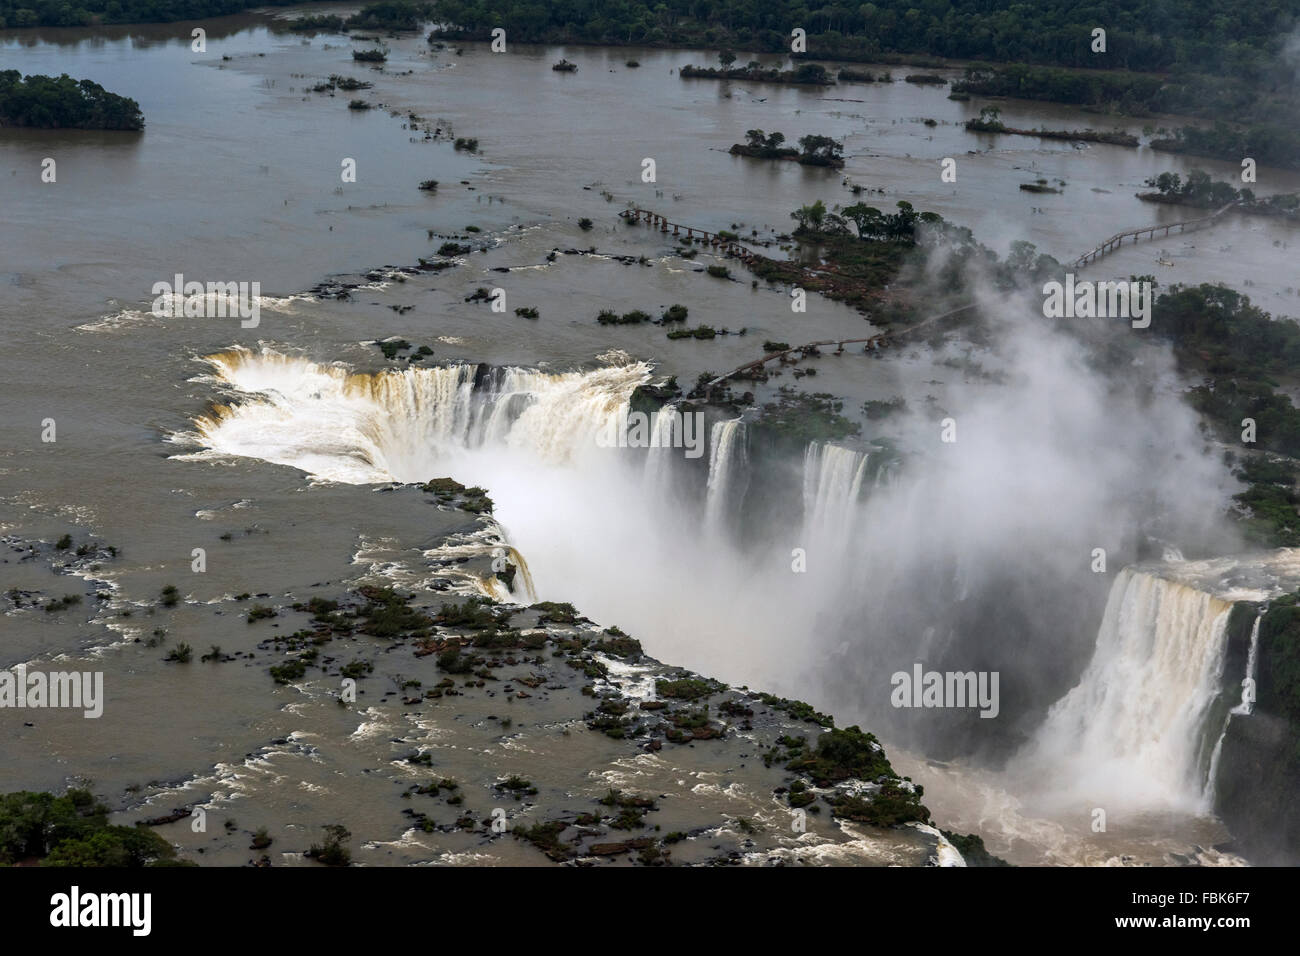 Aerial view, Garganta do Diablo (Devil's Throat) with small birds, Foz do Iguacu, Brazil Argentina Border - Stock Image